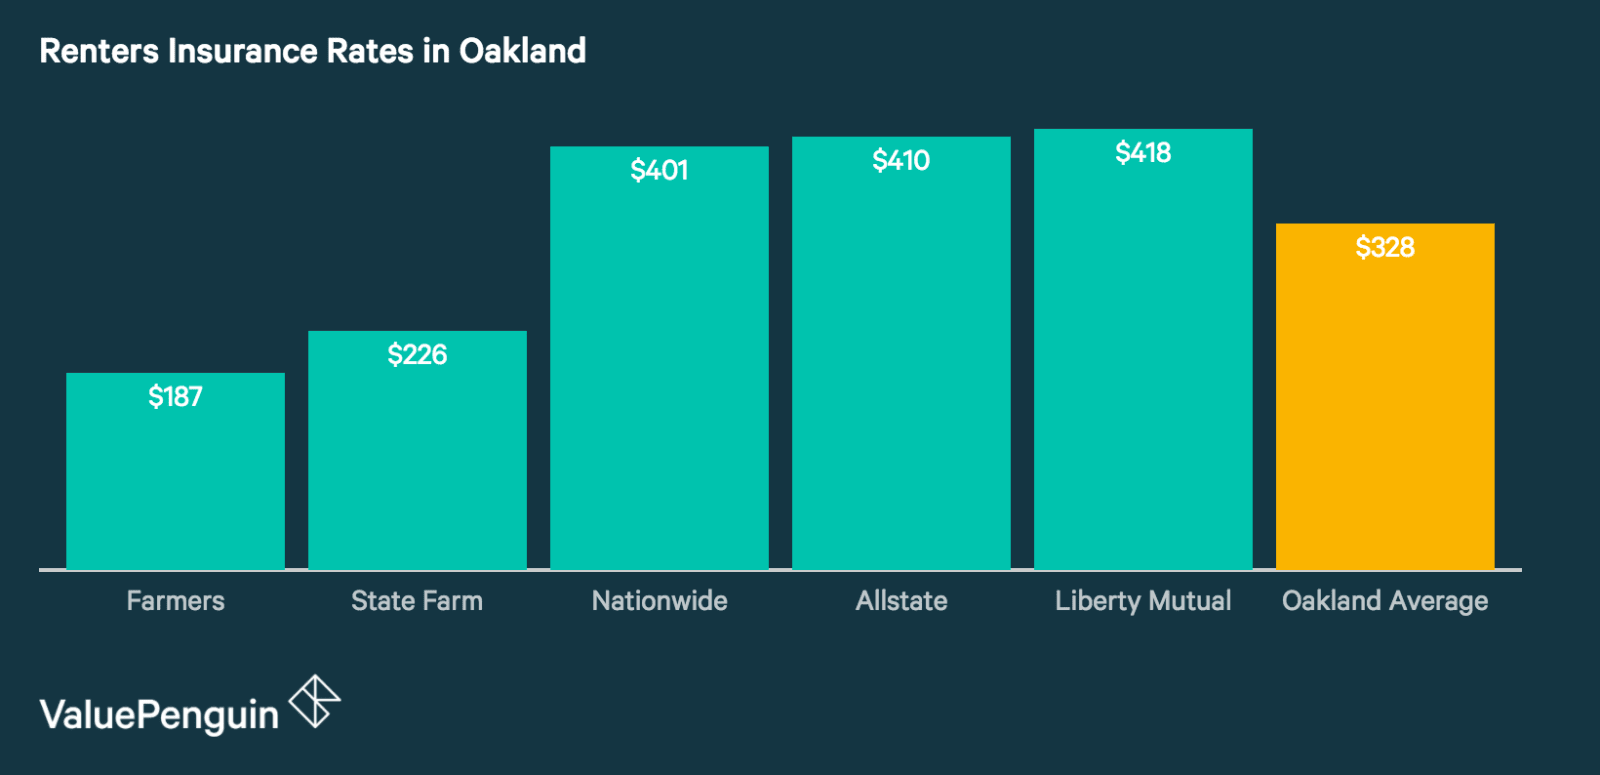 Renters Insurance Rates in Oakland